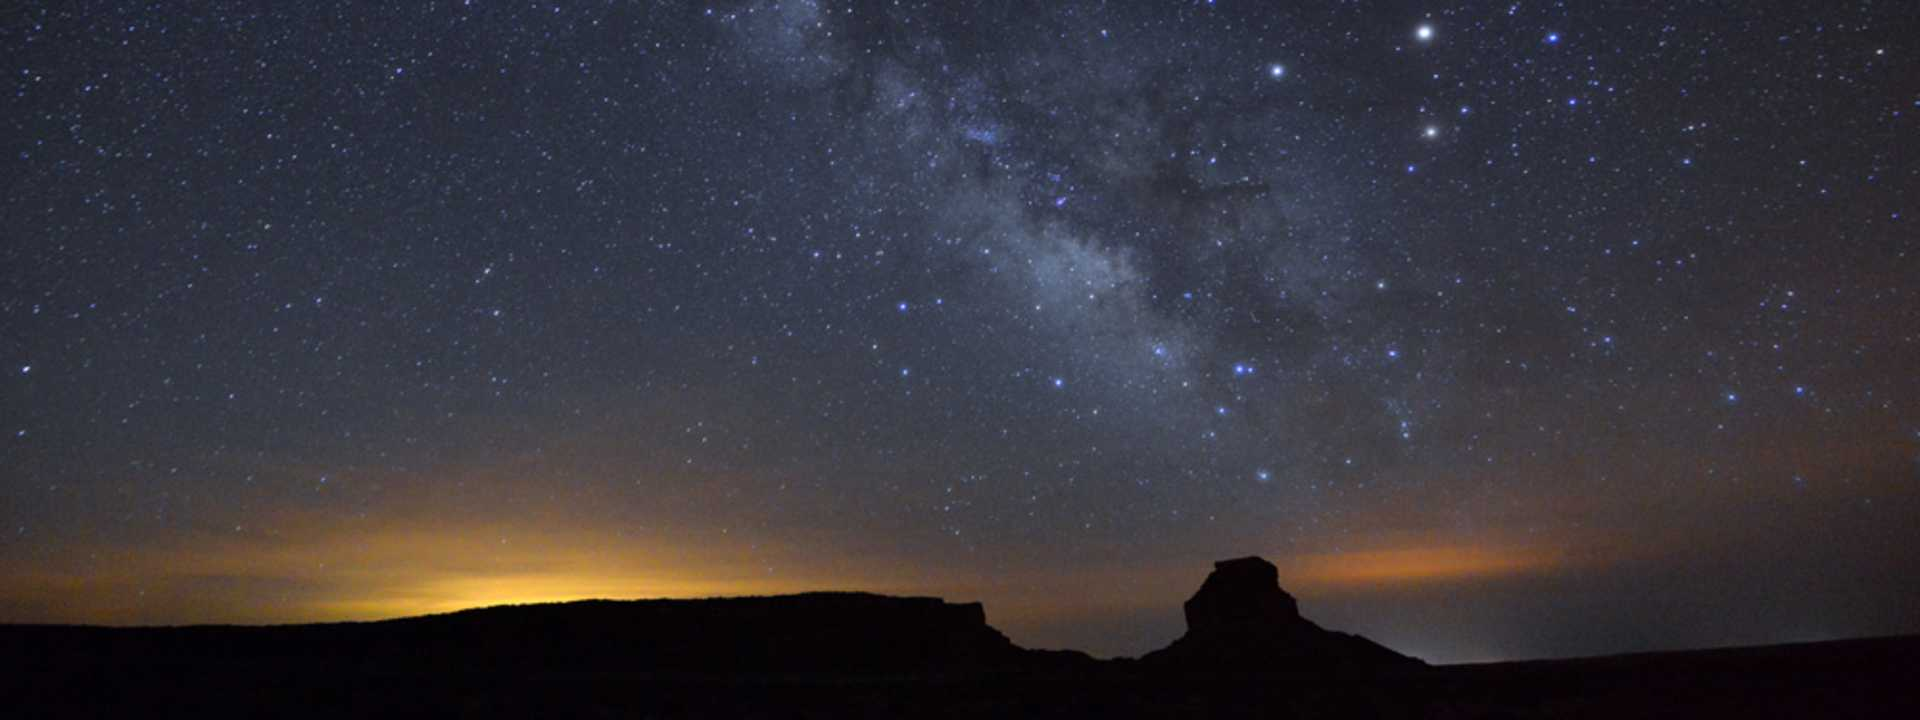 The Milky Way lights the night sky over Chaco Canyon at night.